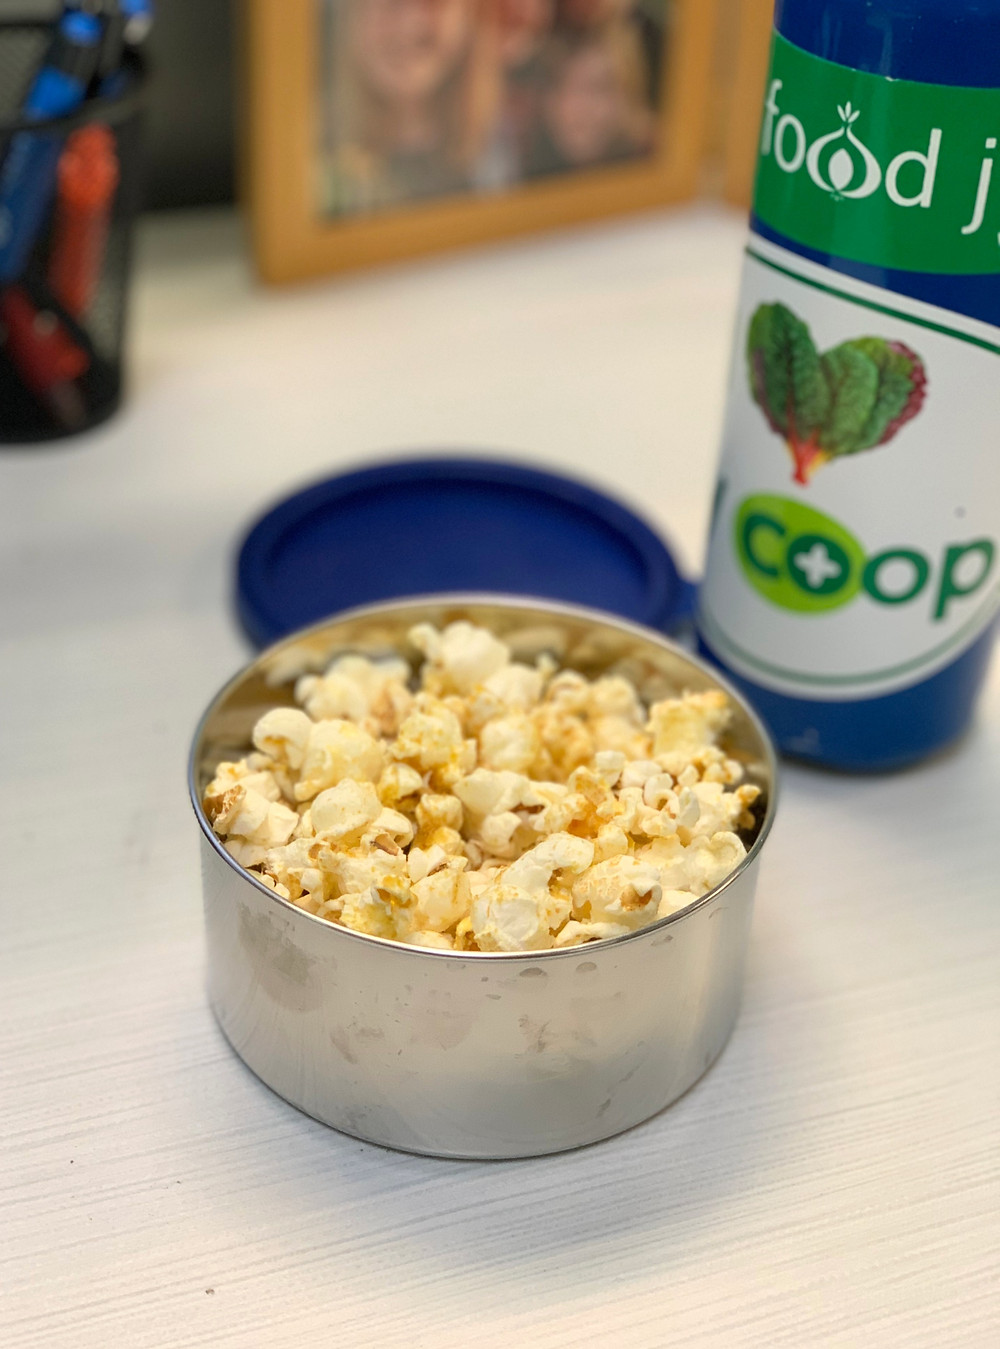 popcorn in a reusable container as a zero waste snack